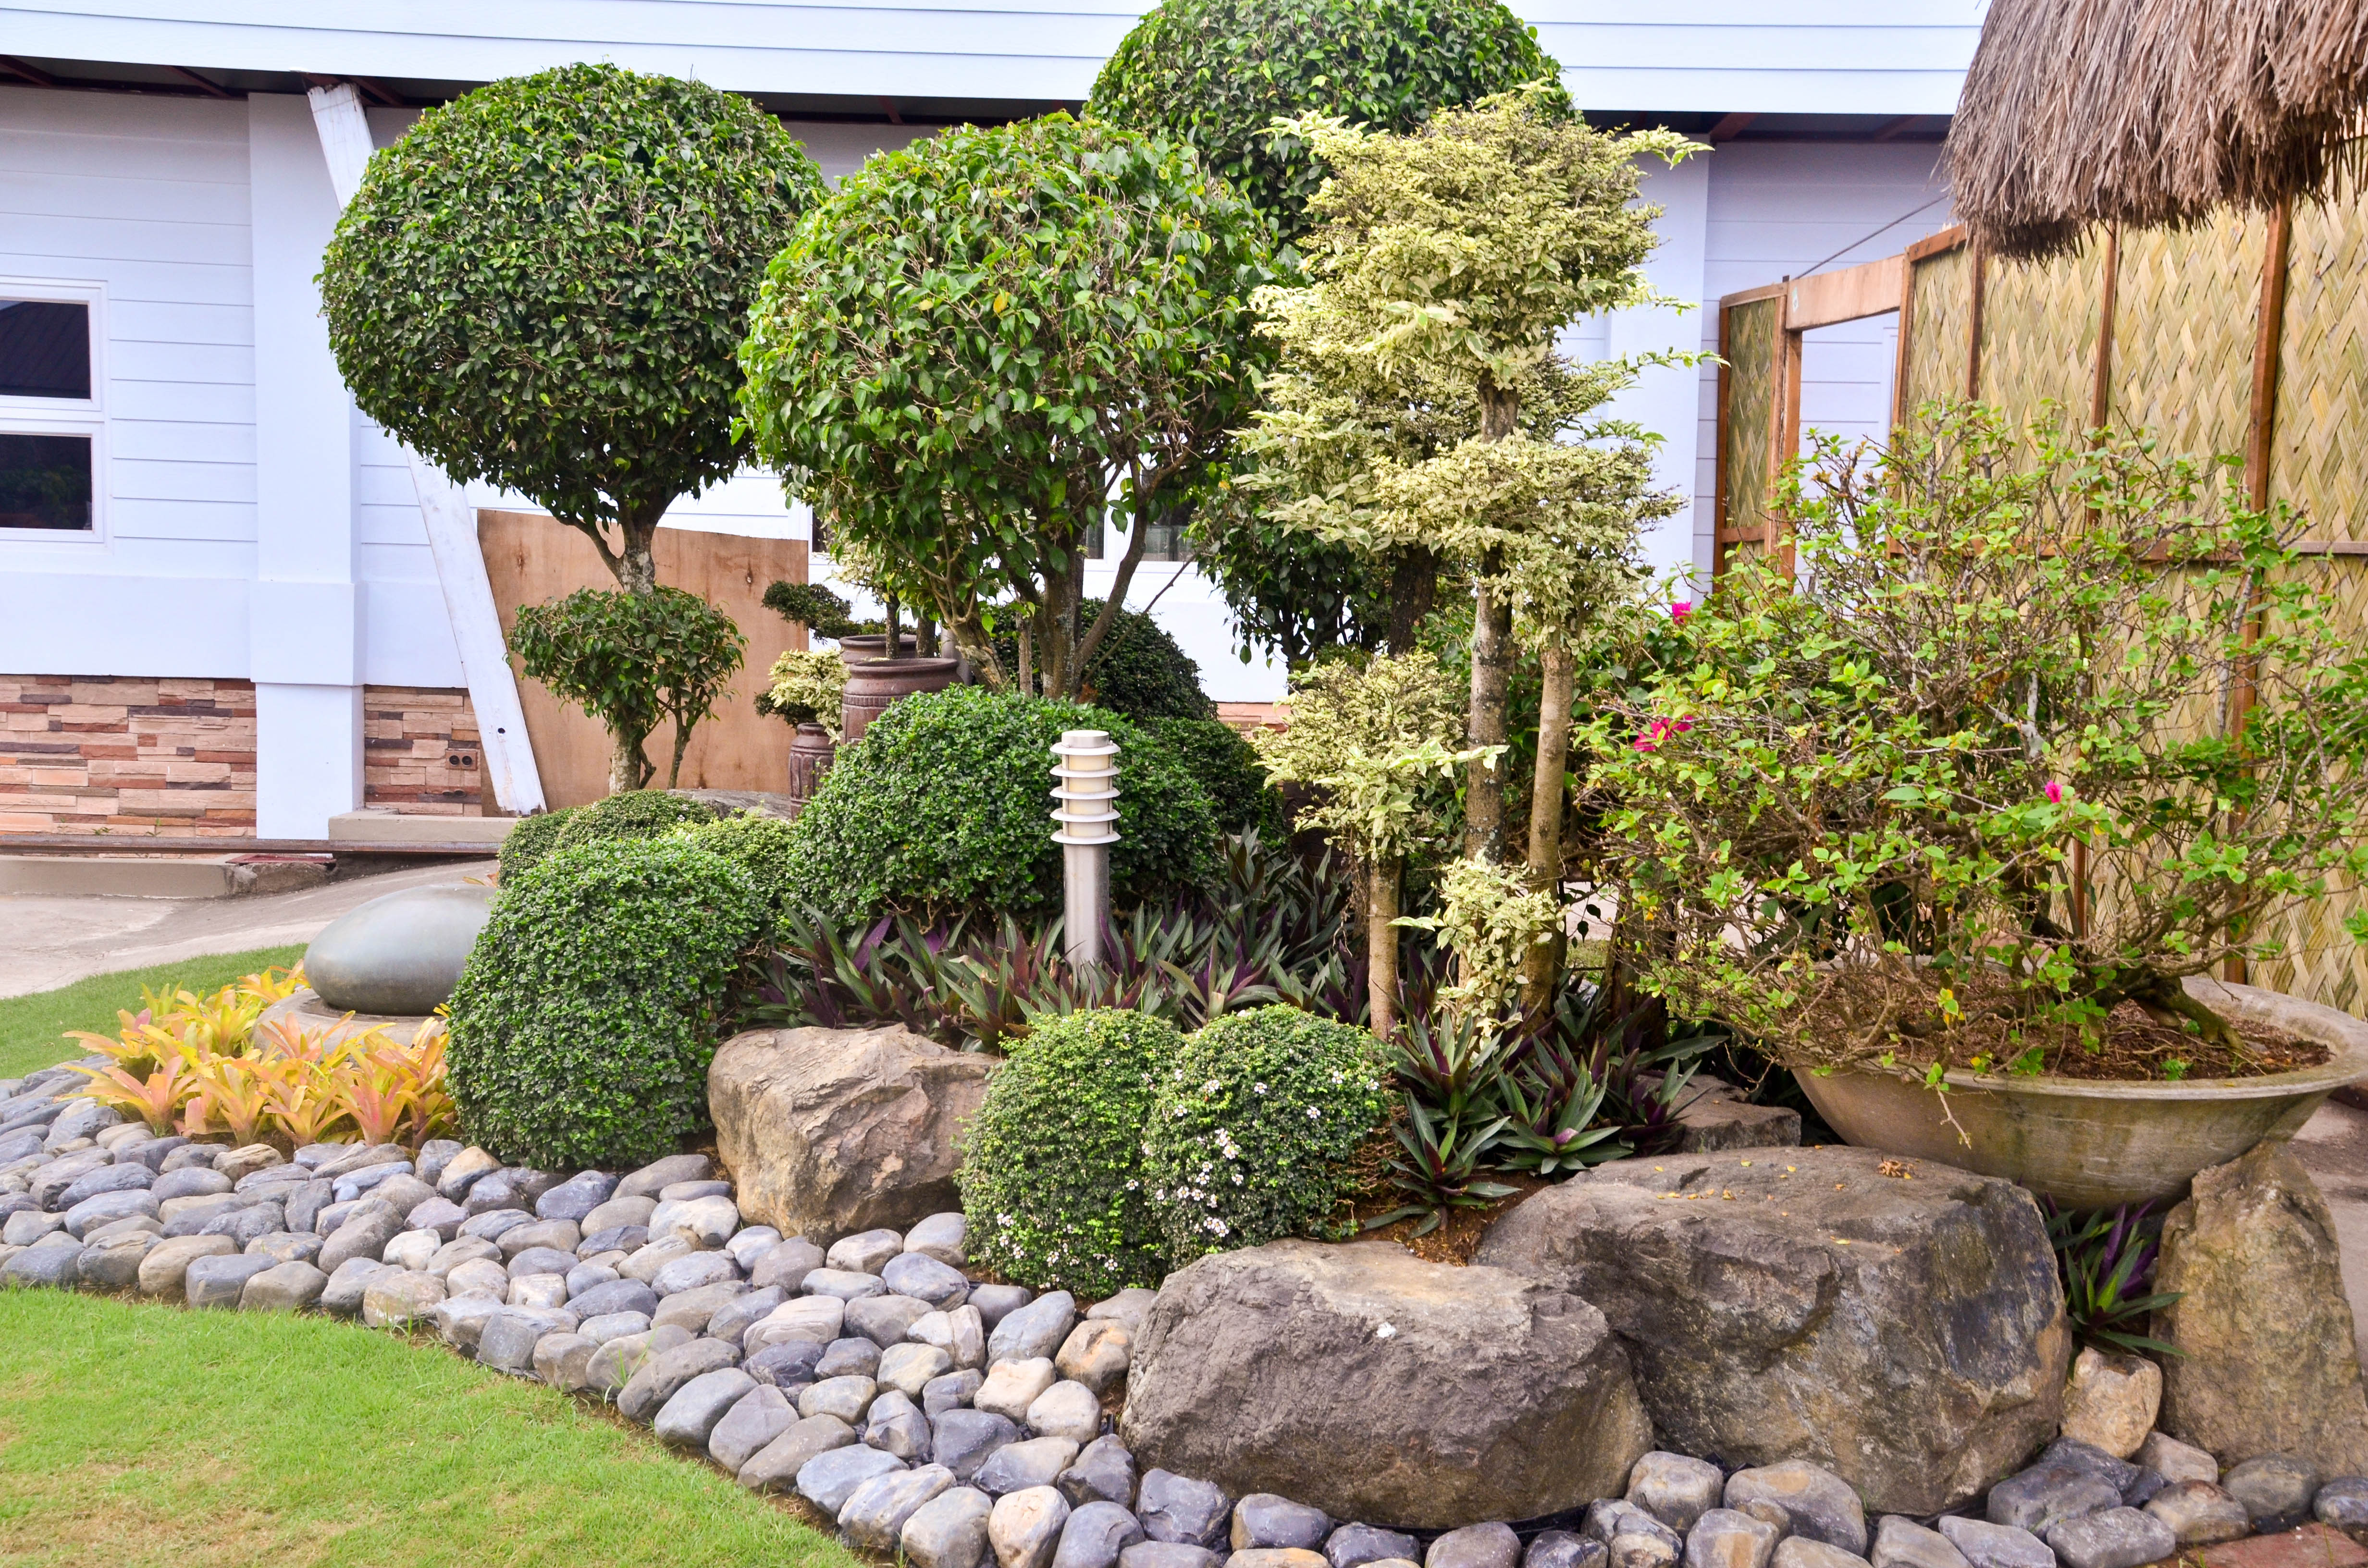 How to Landscape With Rocks: 6 Steps (with Pictures)